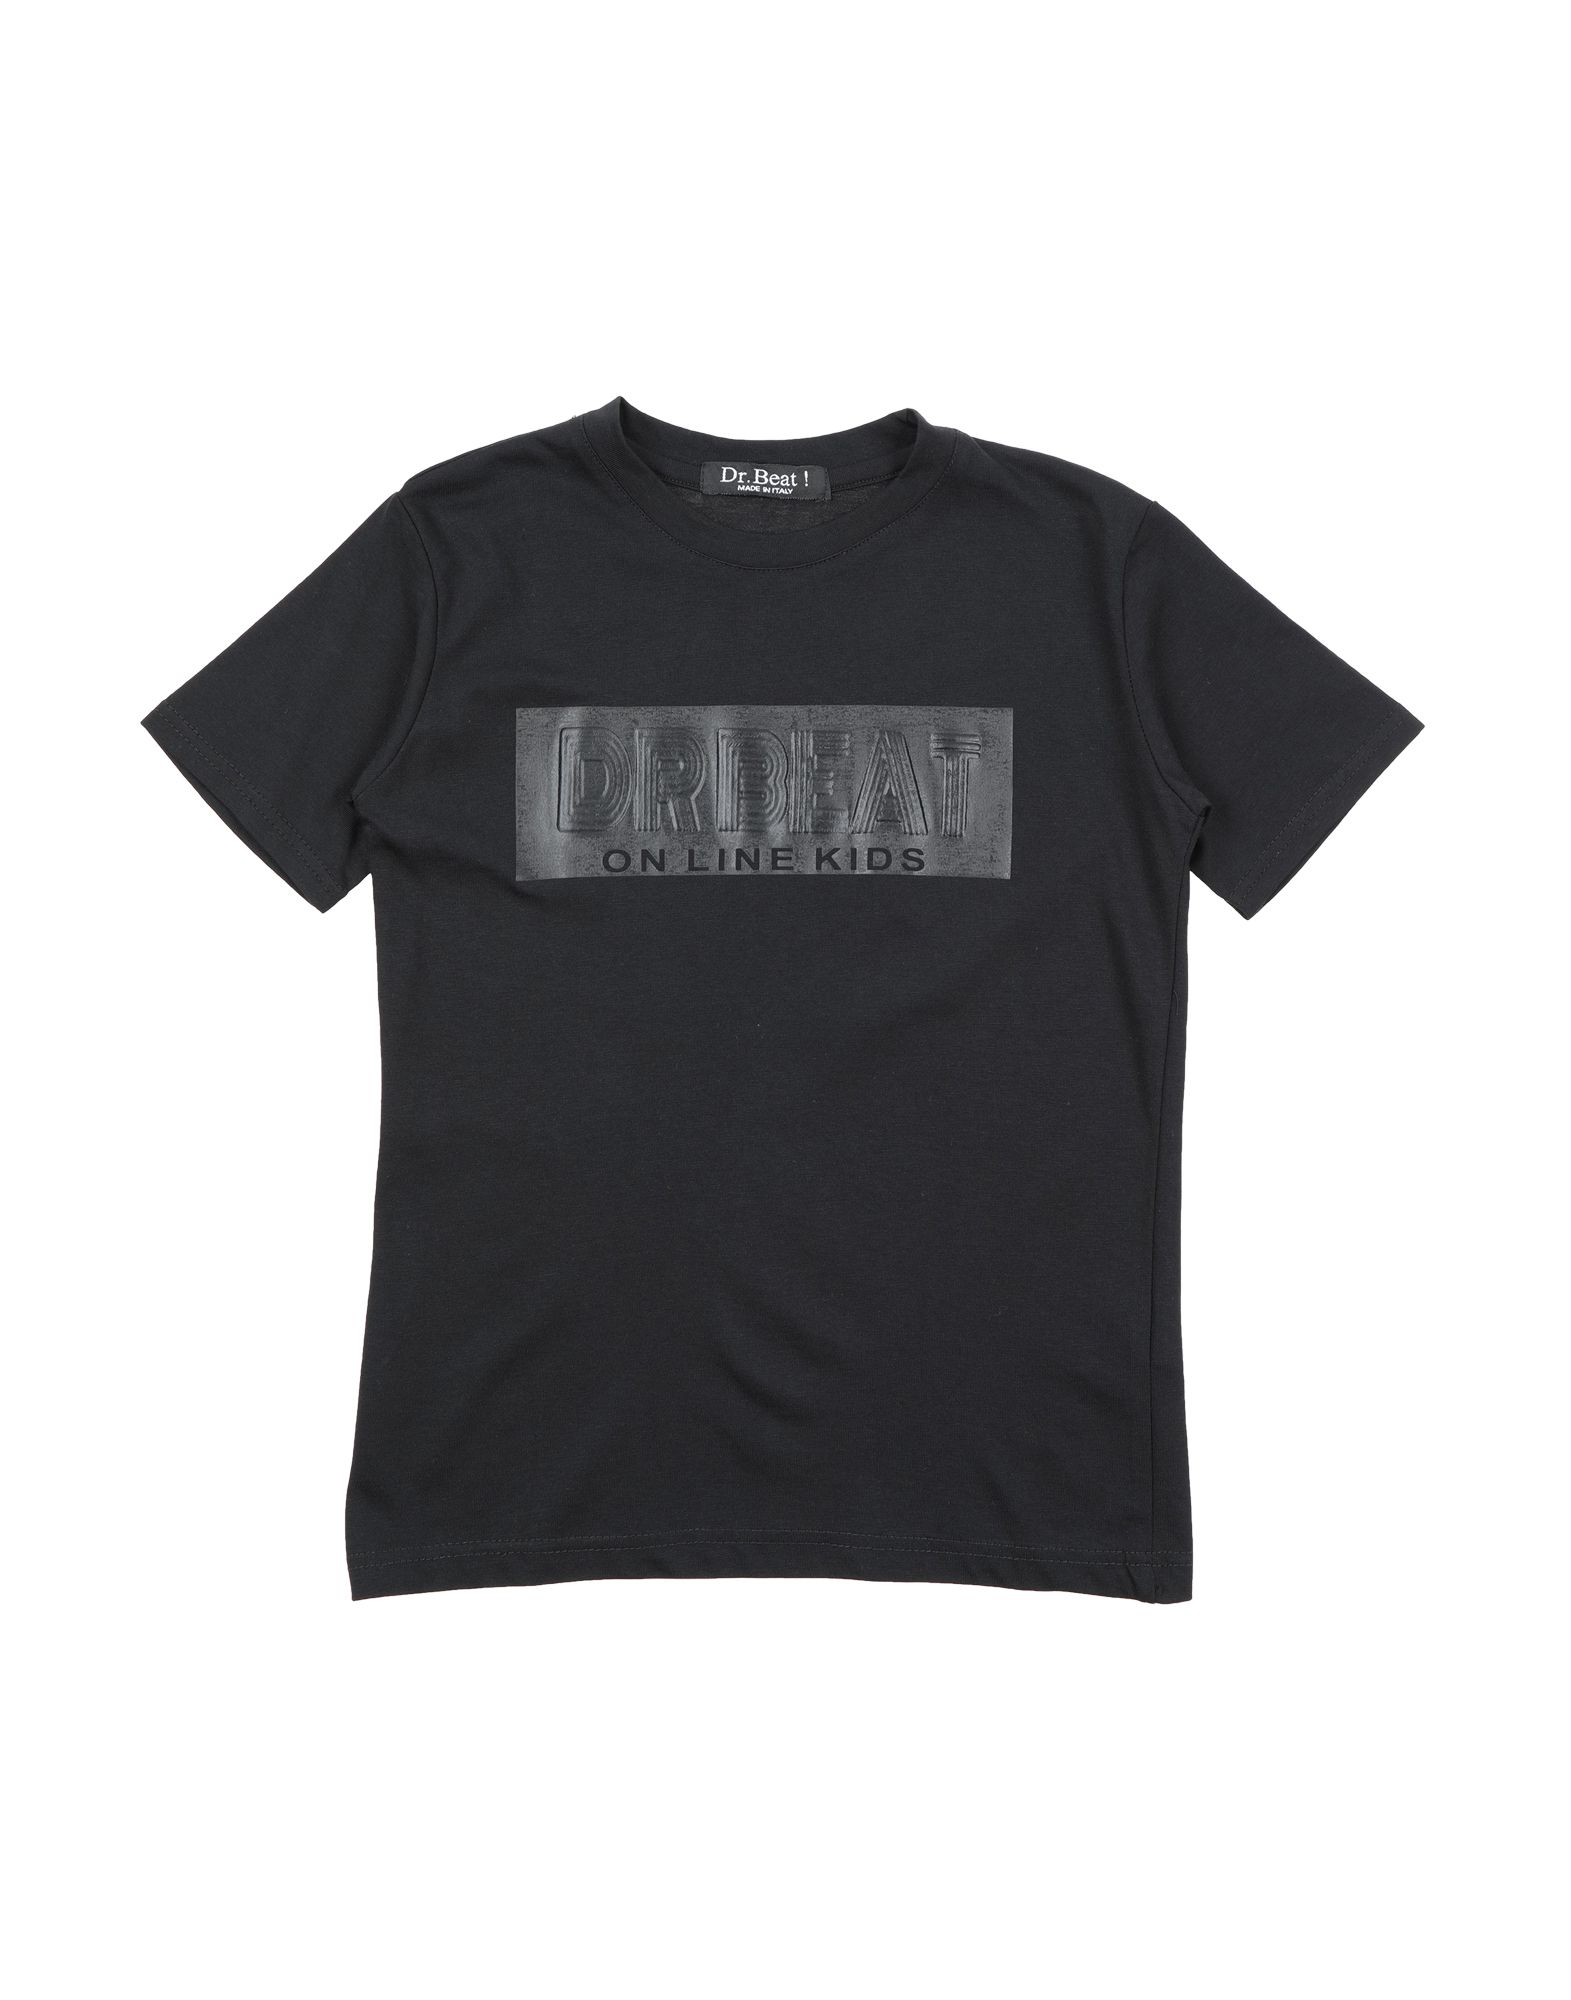 Dr. Beat Kids' ! T-shirts In Black